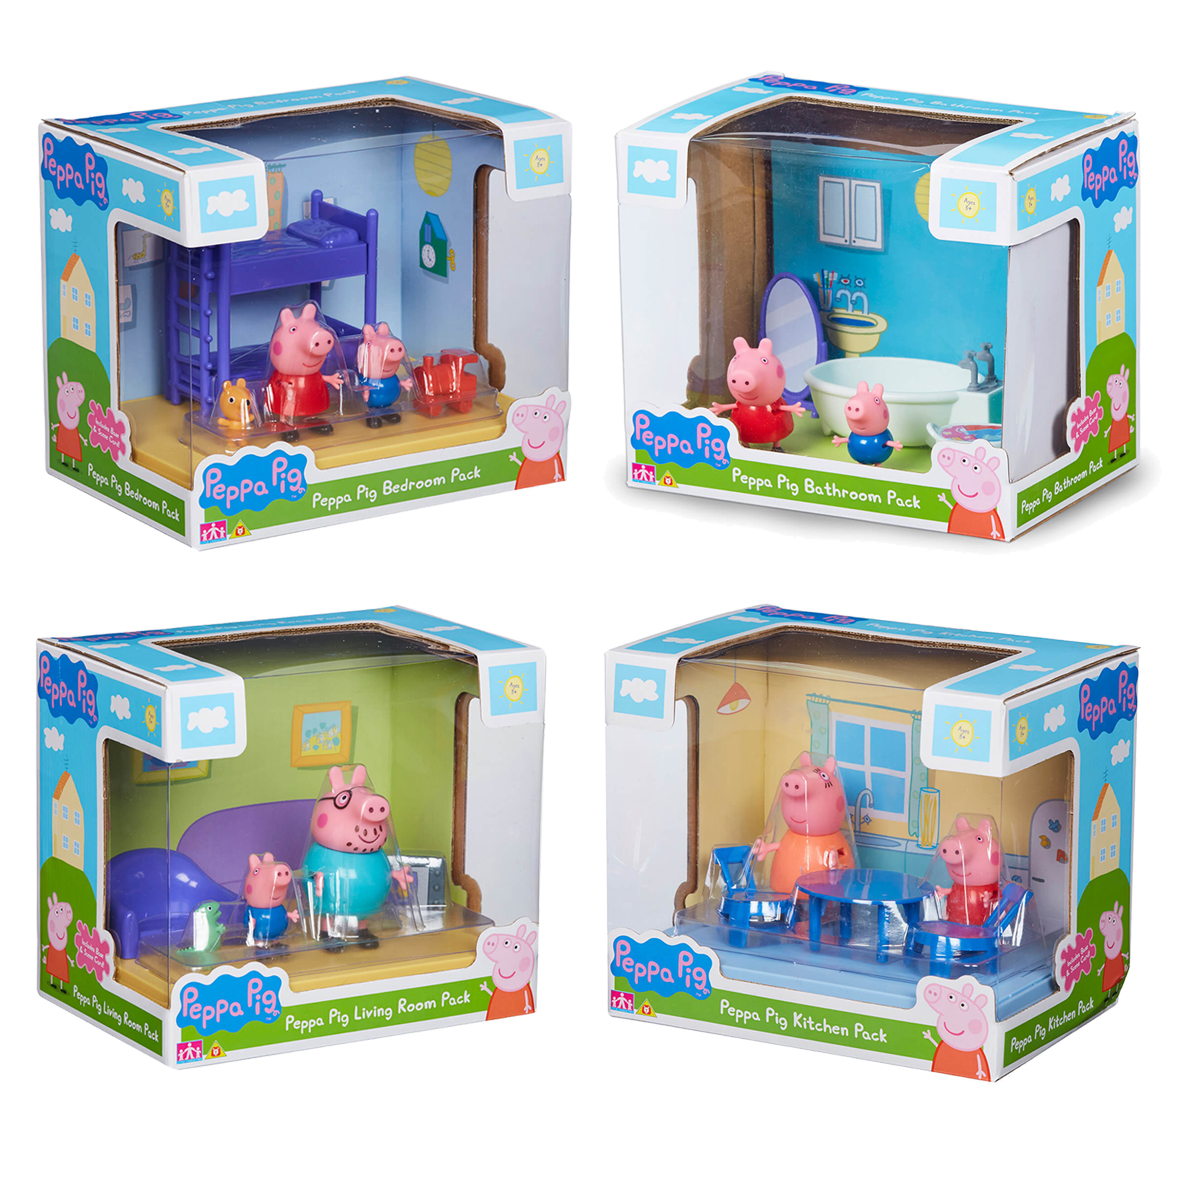 Details About Peppa Pig Mini Boxed Playset Toy Figure Living Room Bedroom Bathroom Kitchen